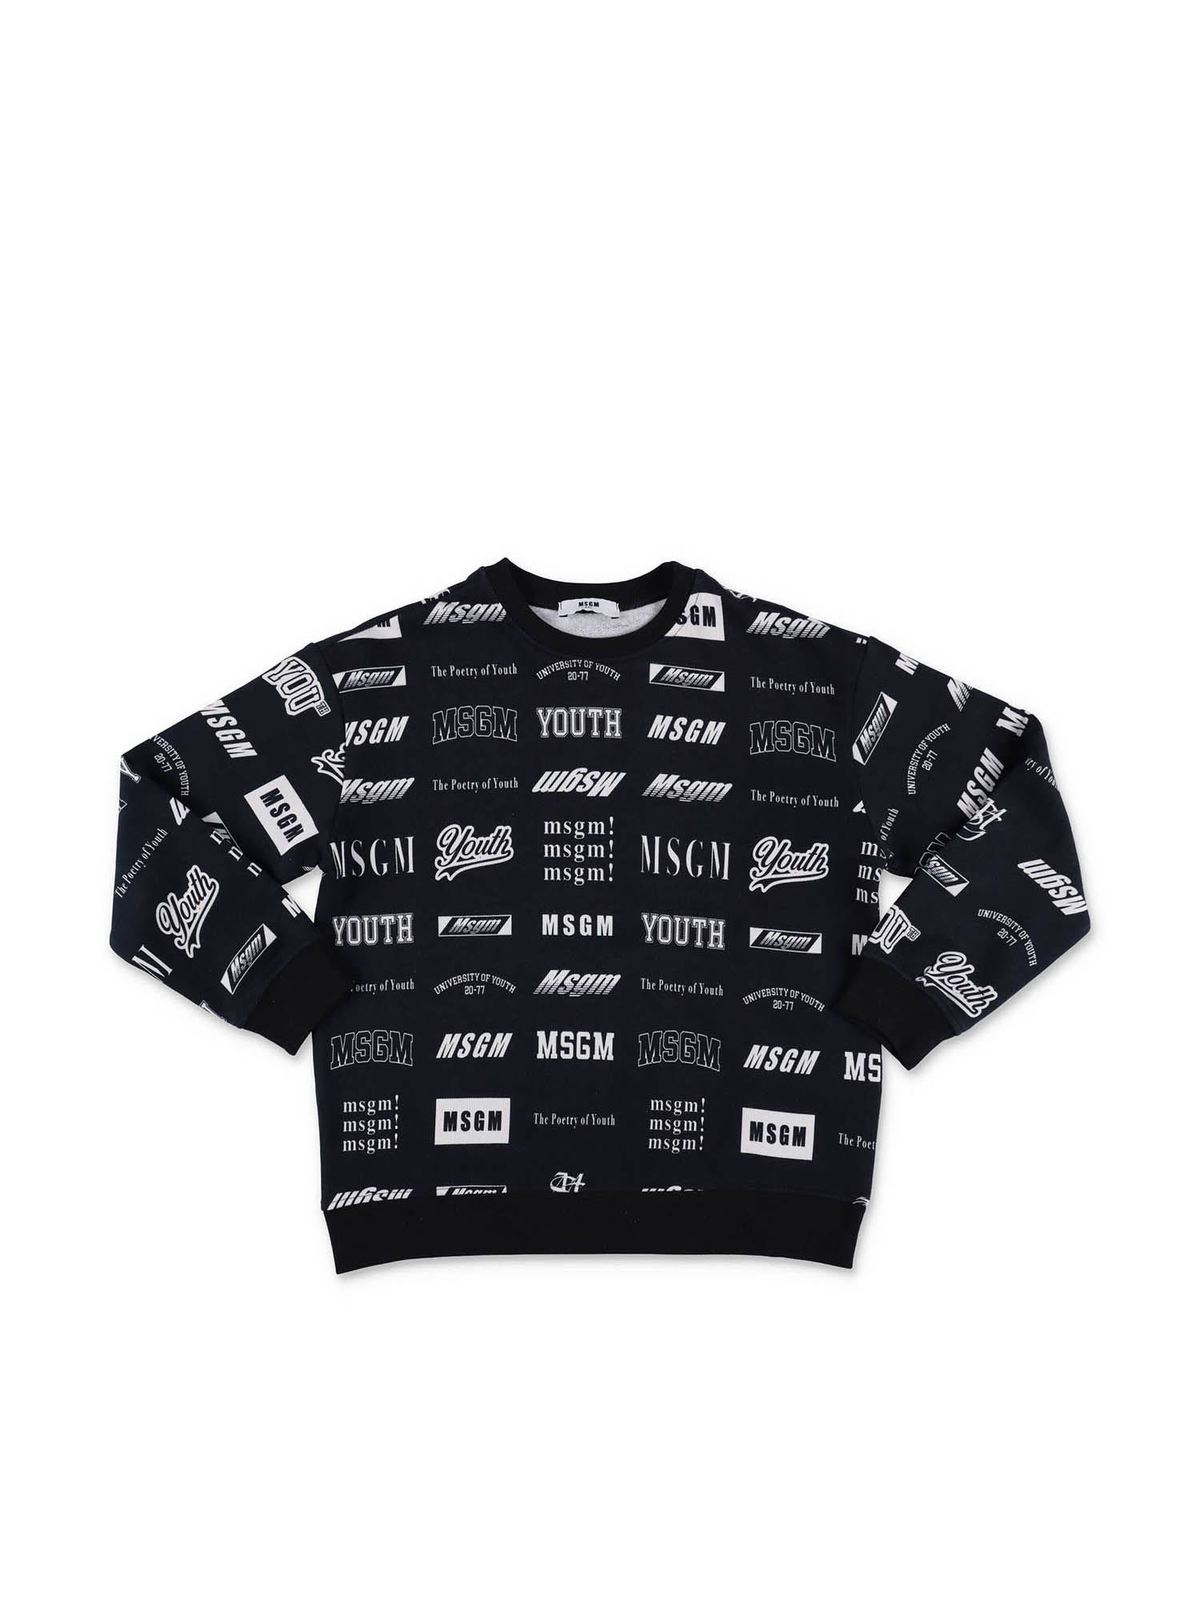 Msgm Cottons BLACK ALL-OVER LOGO SWEATSHIRT